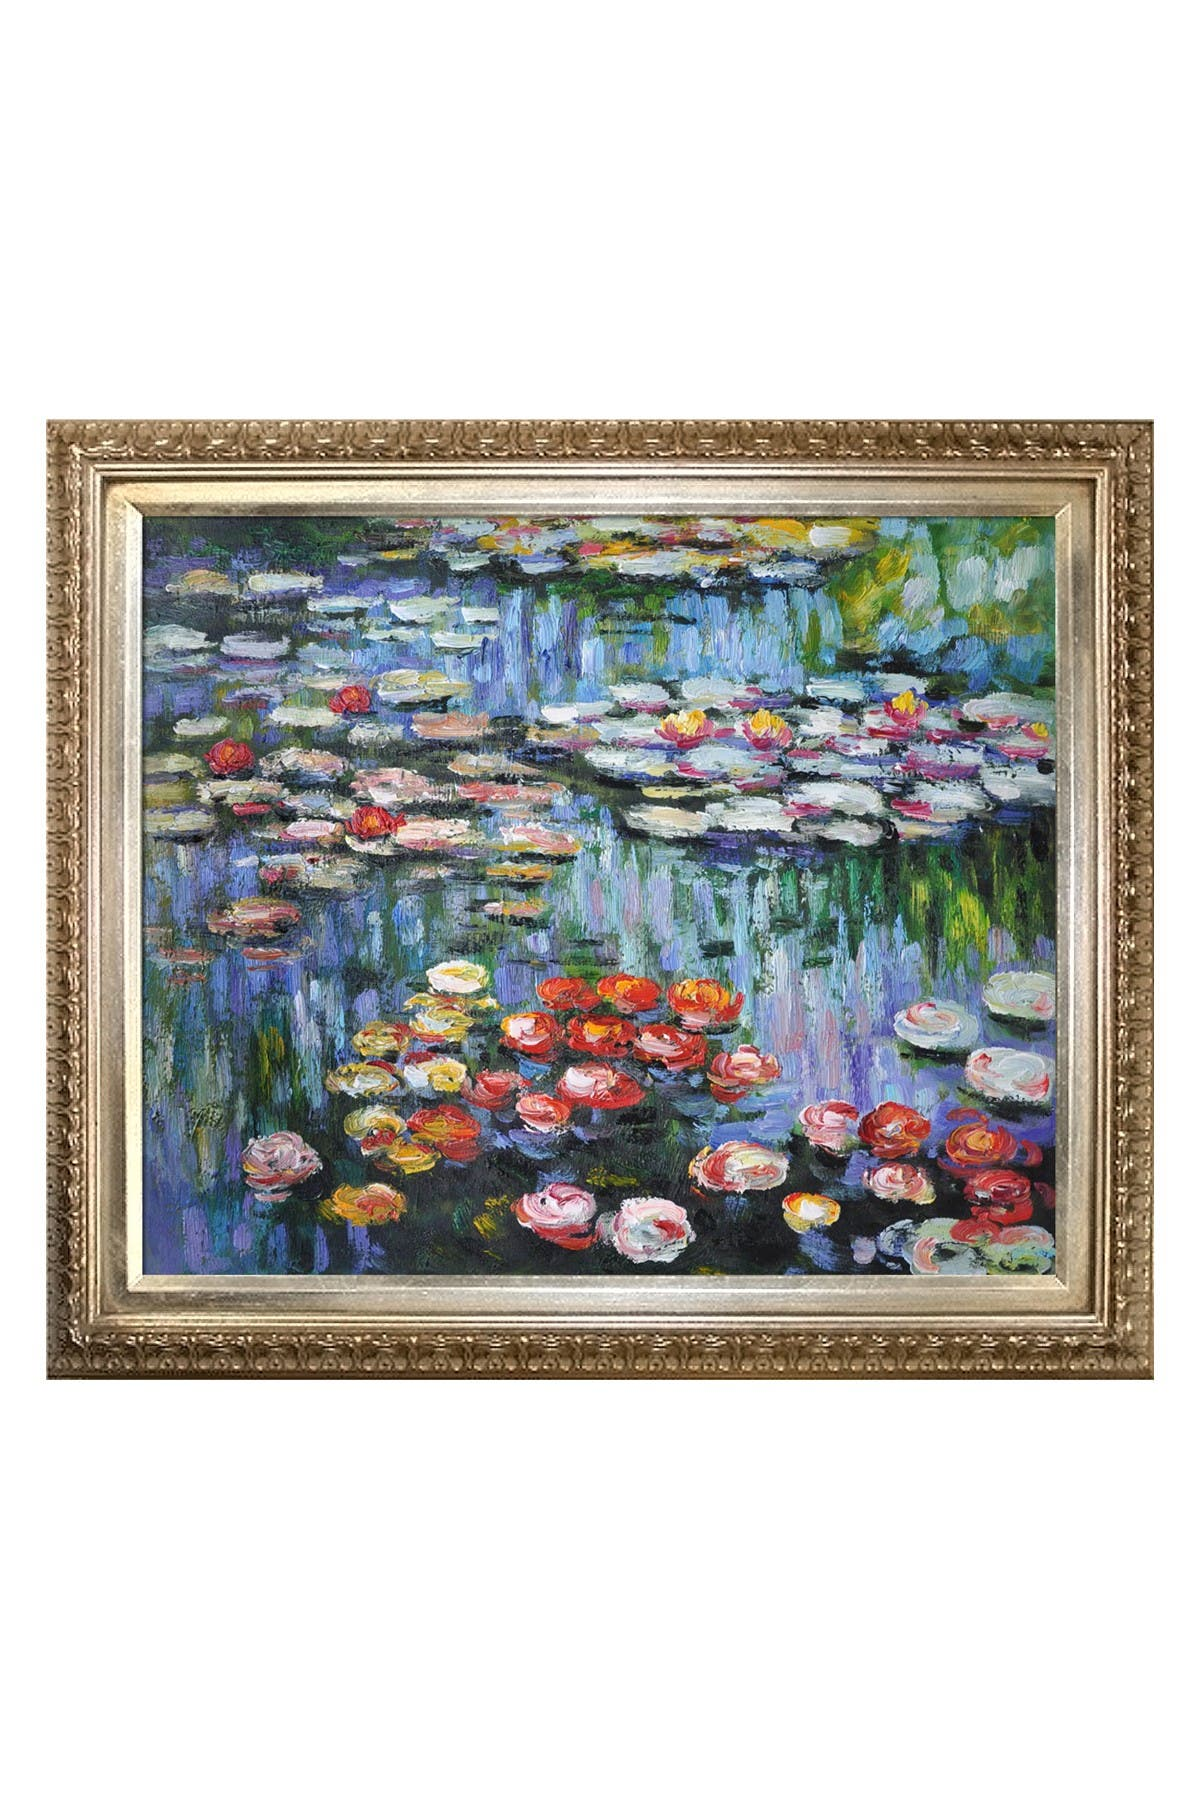 Image of Overstock Art Claude Monet Water Lilies Framed Hand Painted Oil on Canvas